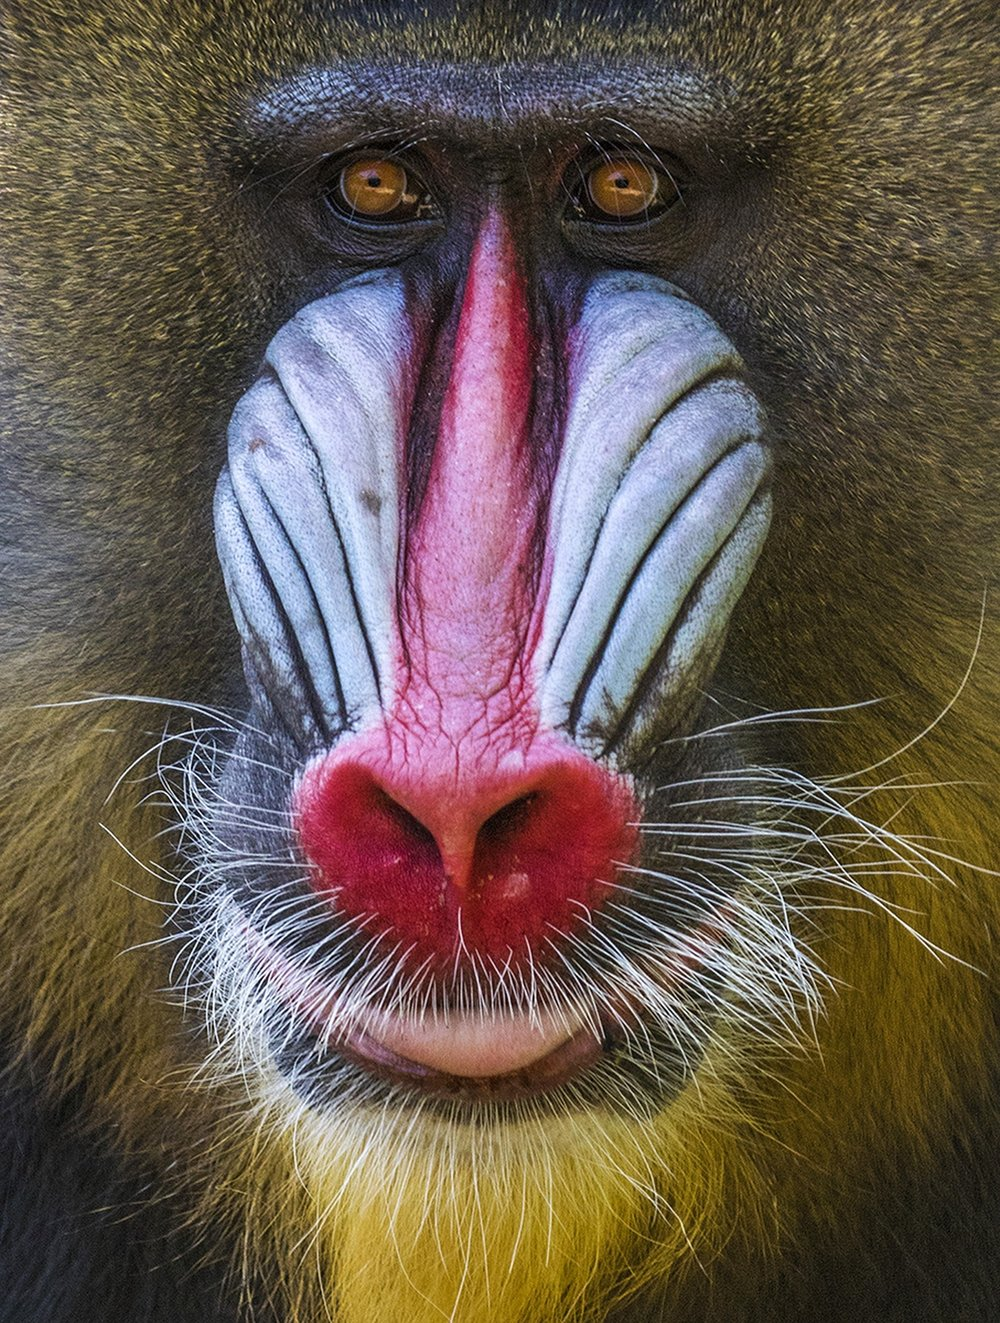 1st place - Mandrill in Denver Zoo~Gerald Emmerich, Jr. - Image Makers